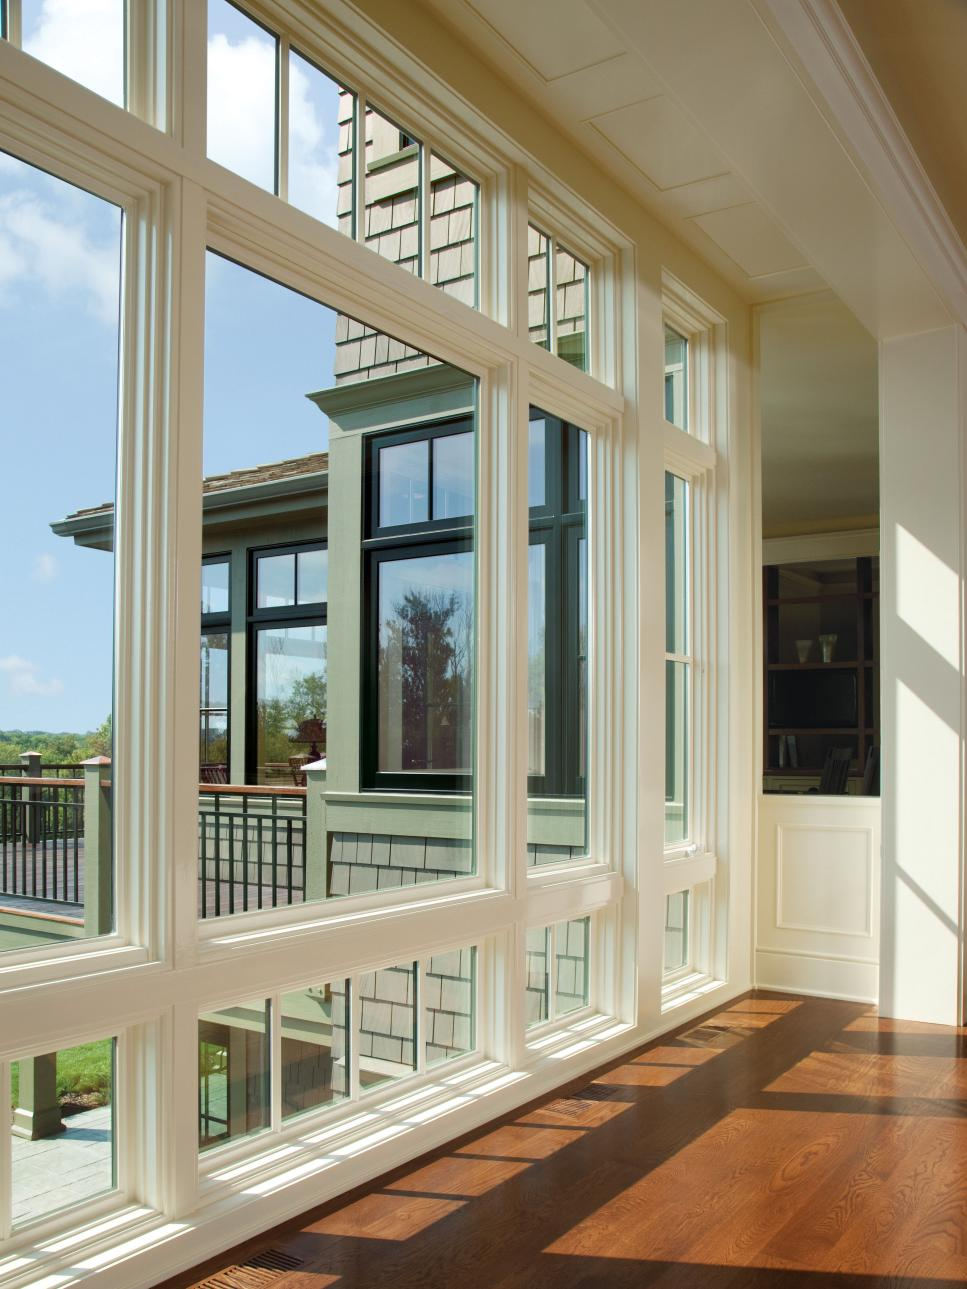 8 types of windows hgtv for Best windows for new house